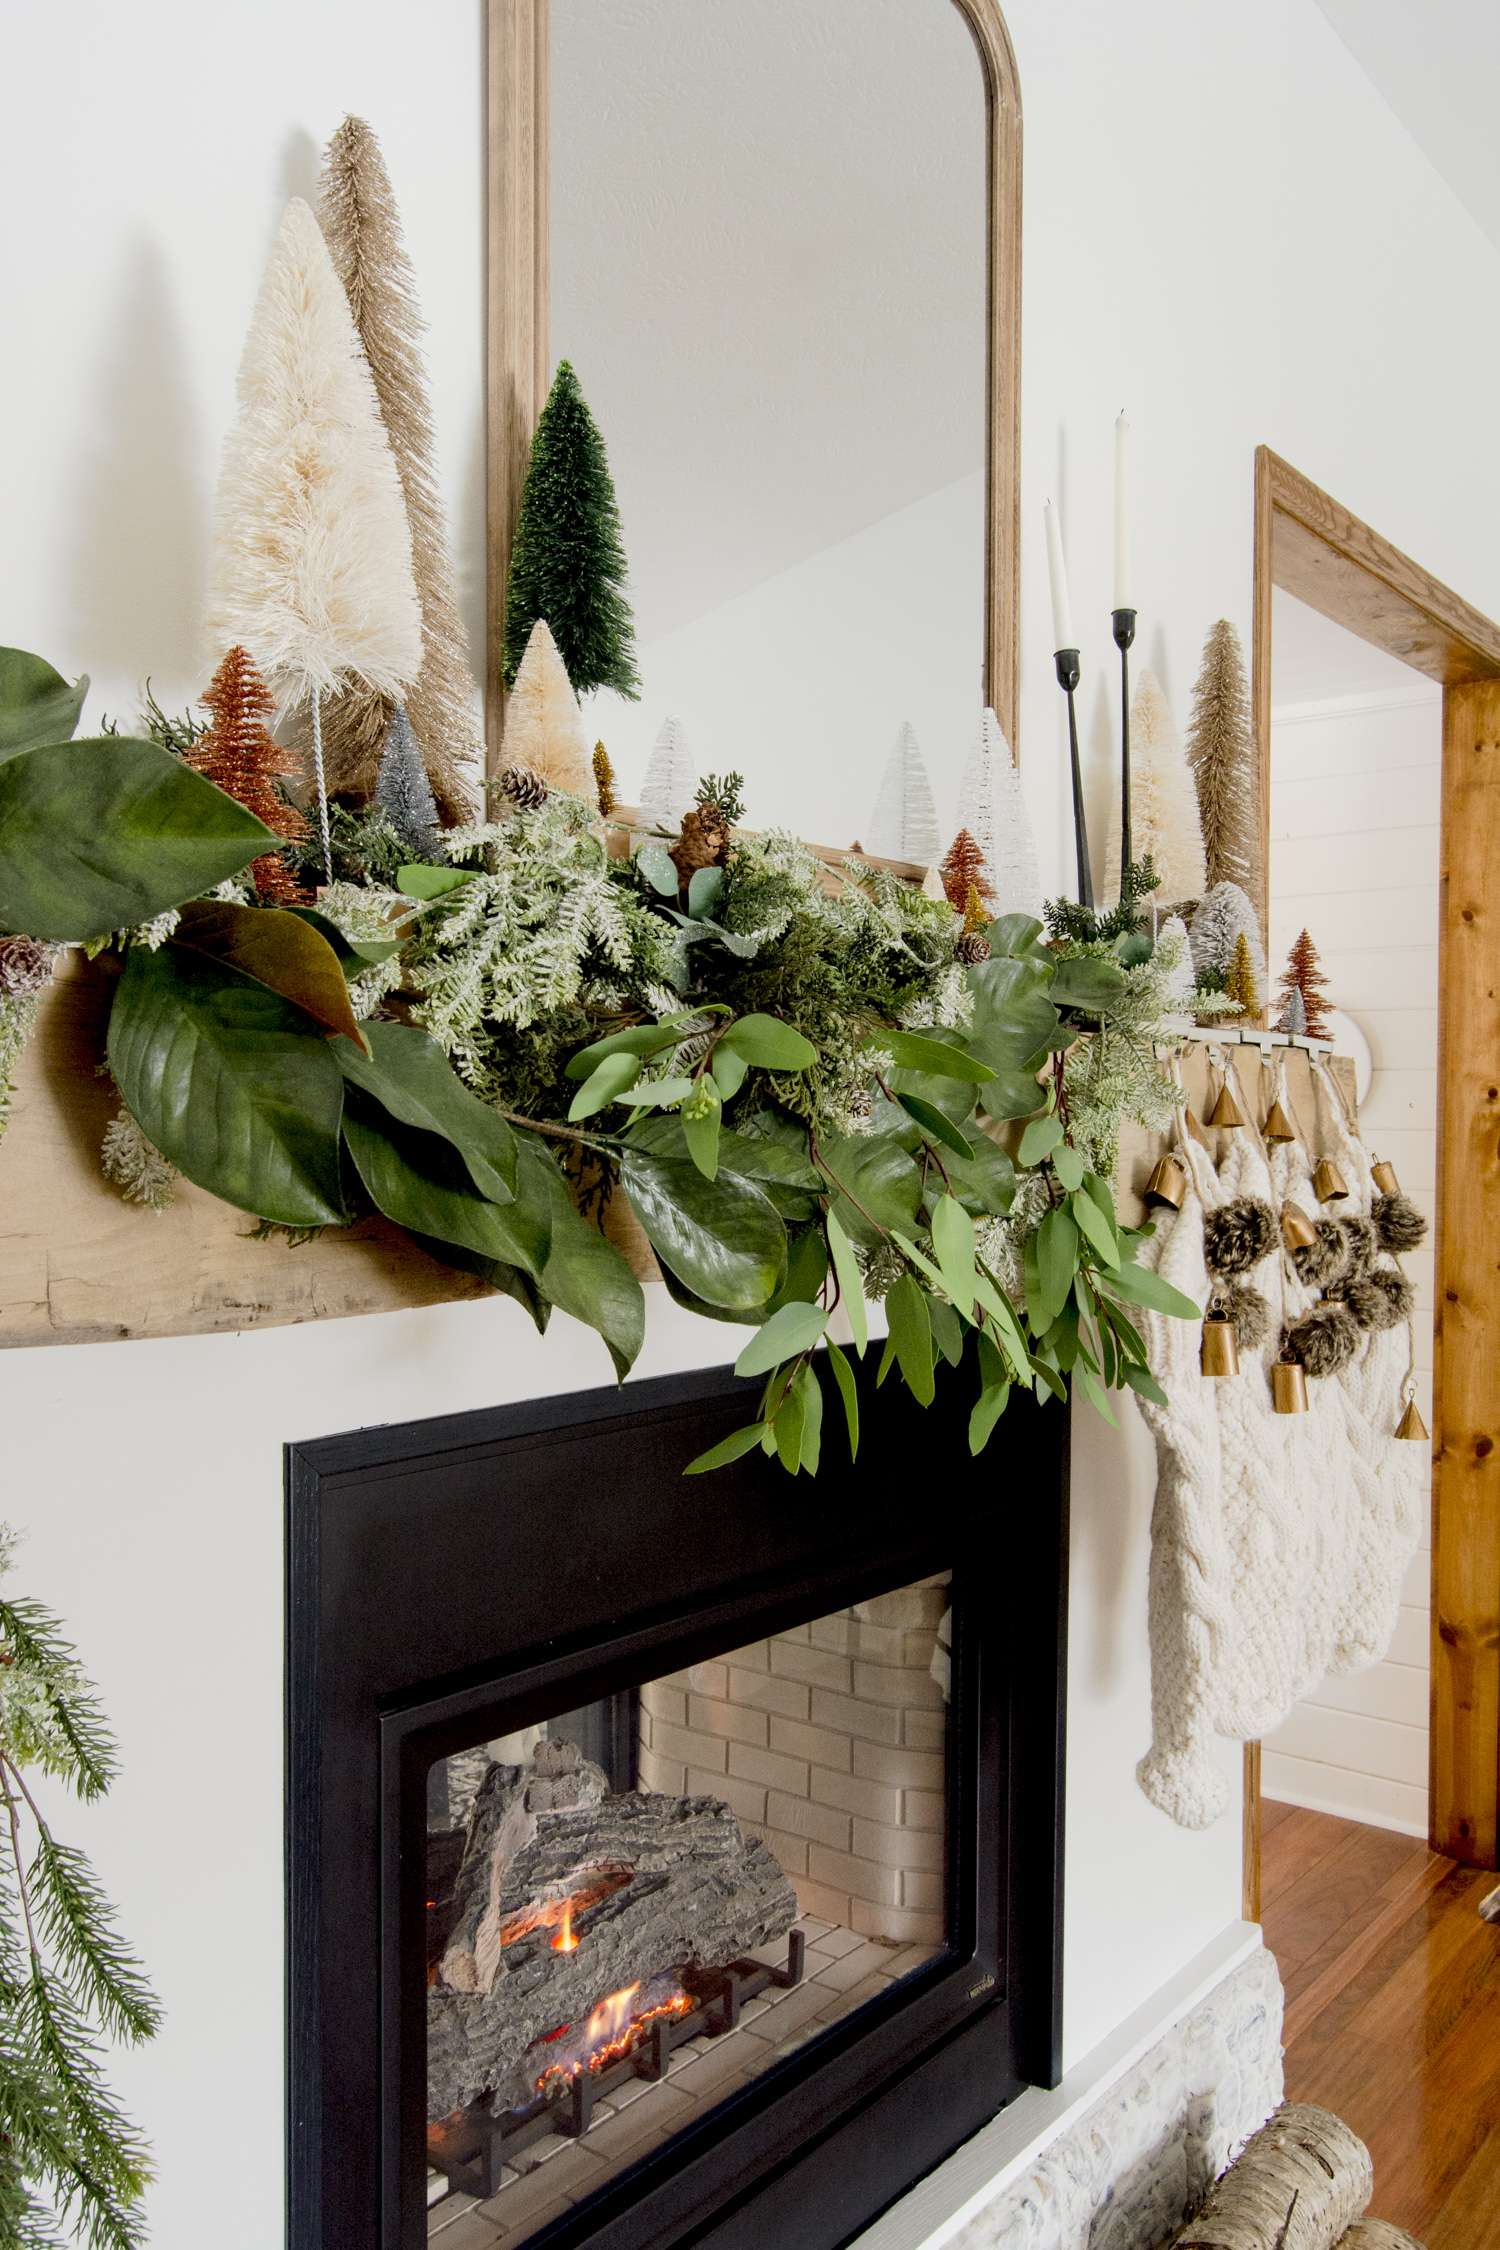 Faux garland for a Christmas mantel.